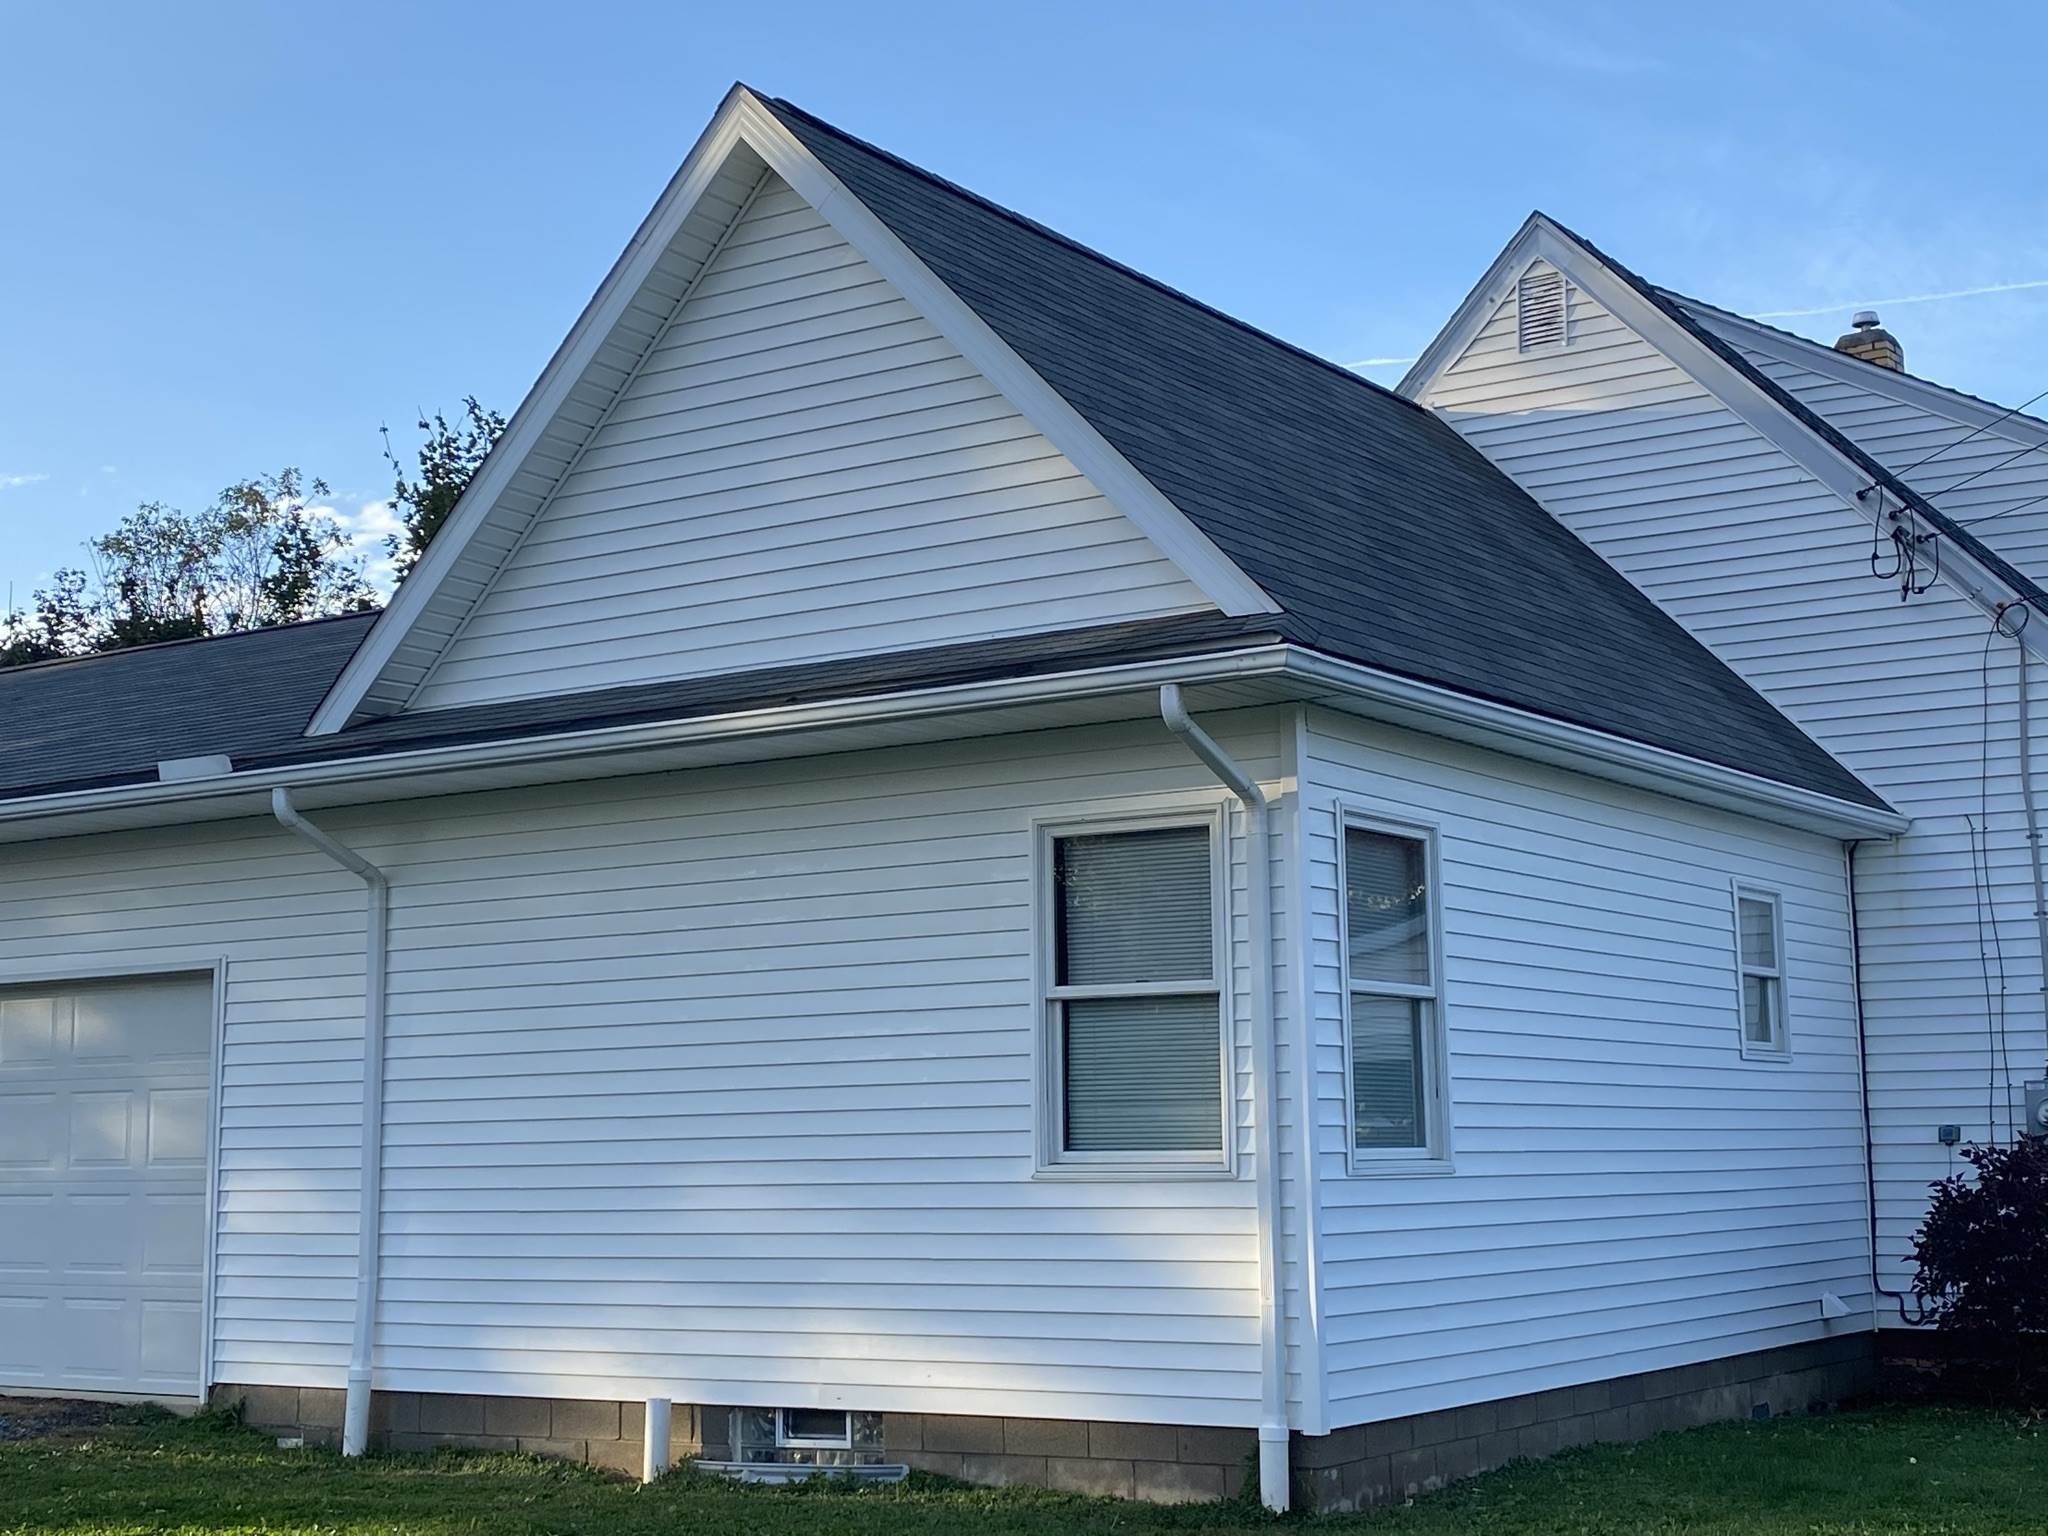 292 Sherman, Ashland, OH 44805